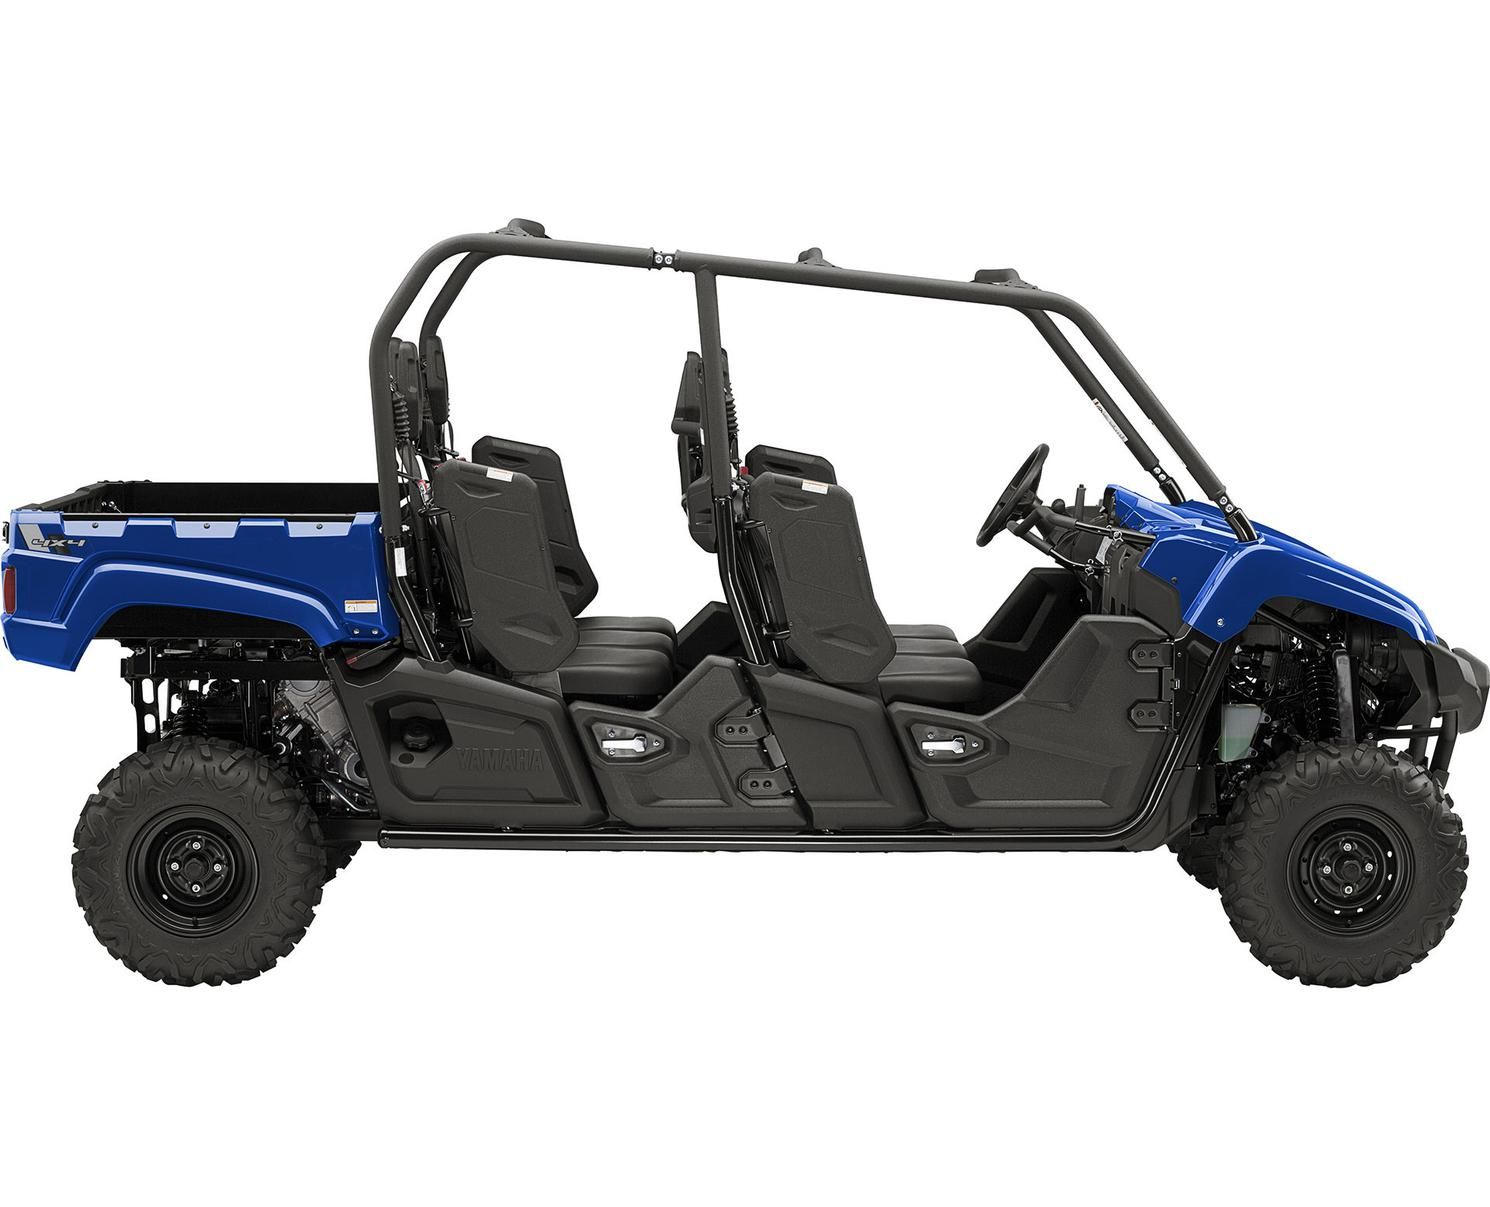 2021 Yamaha Viking VI EPS Frais inclus+Taxes